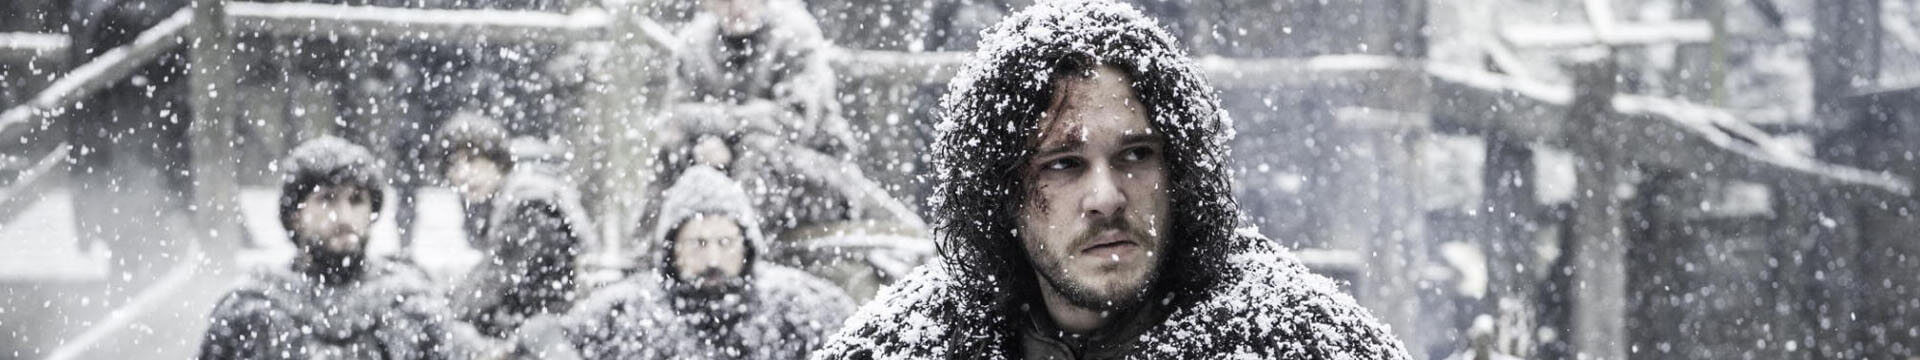 Jon Snow Might Be Dead (We Hope Not), But SEO Isn't! Here's Why…